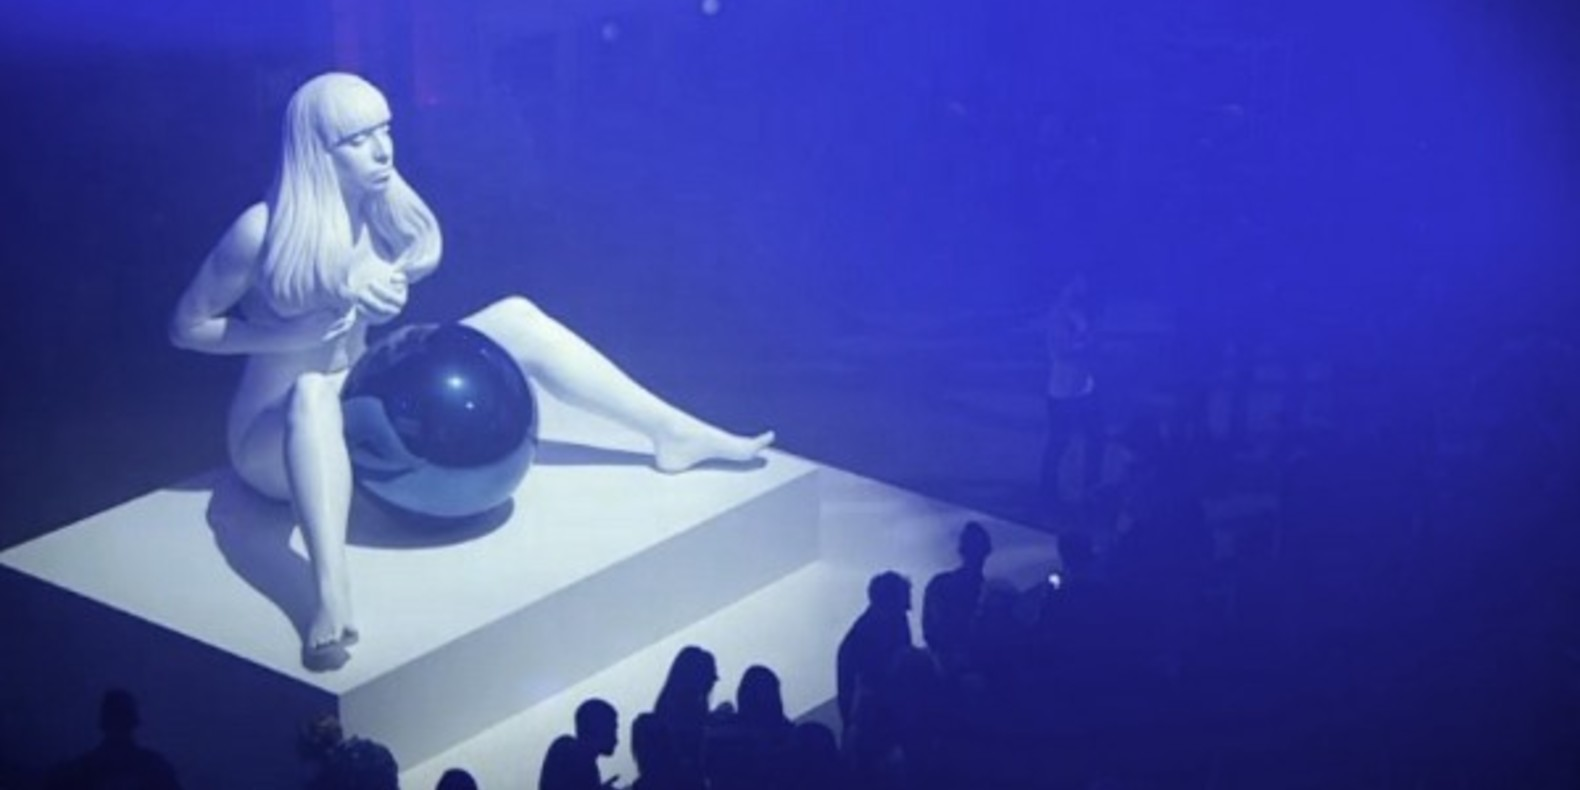 http://fichier3d.fr/wp-content/uploads/2013/12/cults-lady-gaga-robe-mode-artpop-materialise-studio-XO-scanning-3D-musique-Art-Rave-fashion-fichier-3d-jeff-koons-scott-eaton-5-e1386066849754.jpg